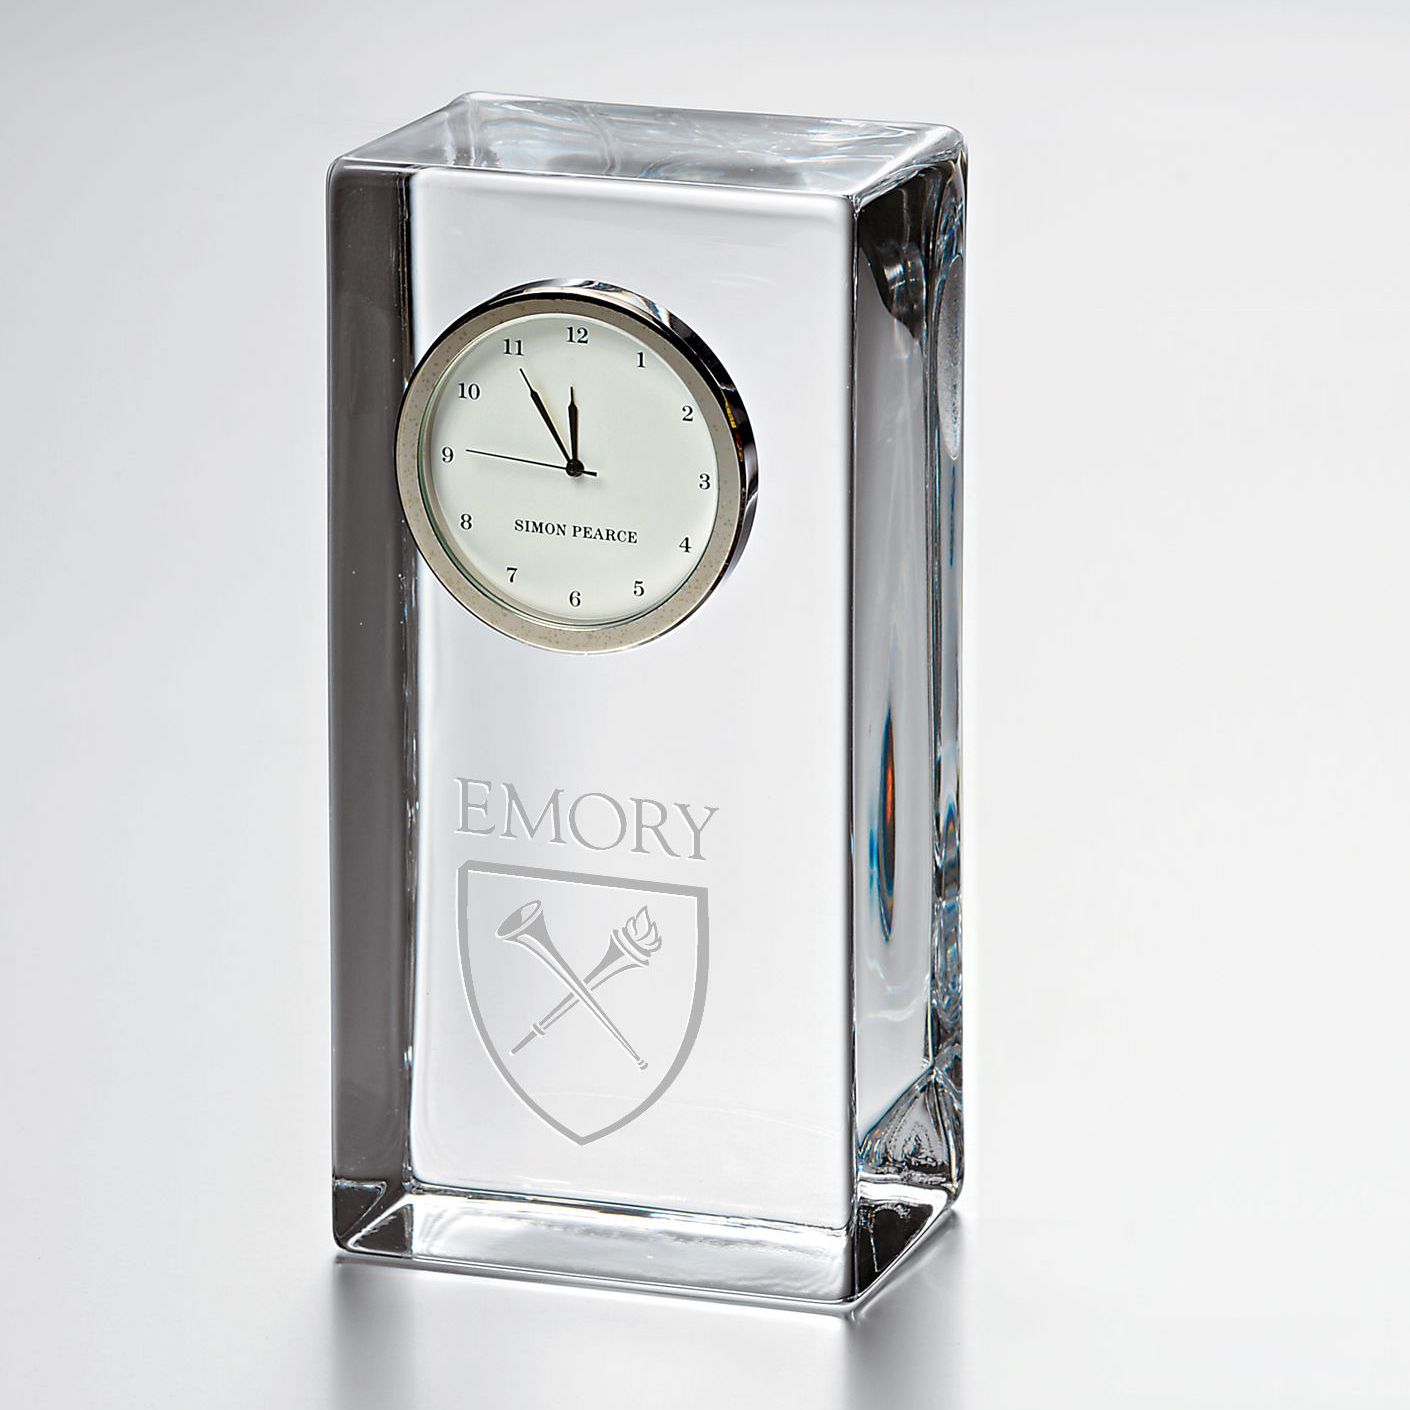 Emory Tall Desk Clock by Simon Pearce